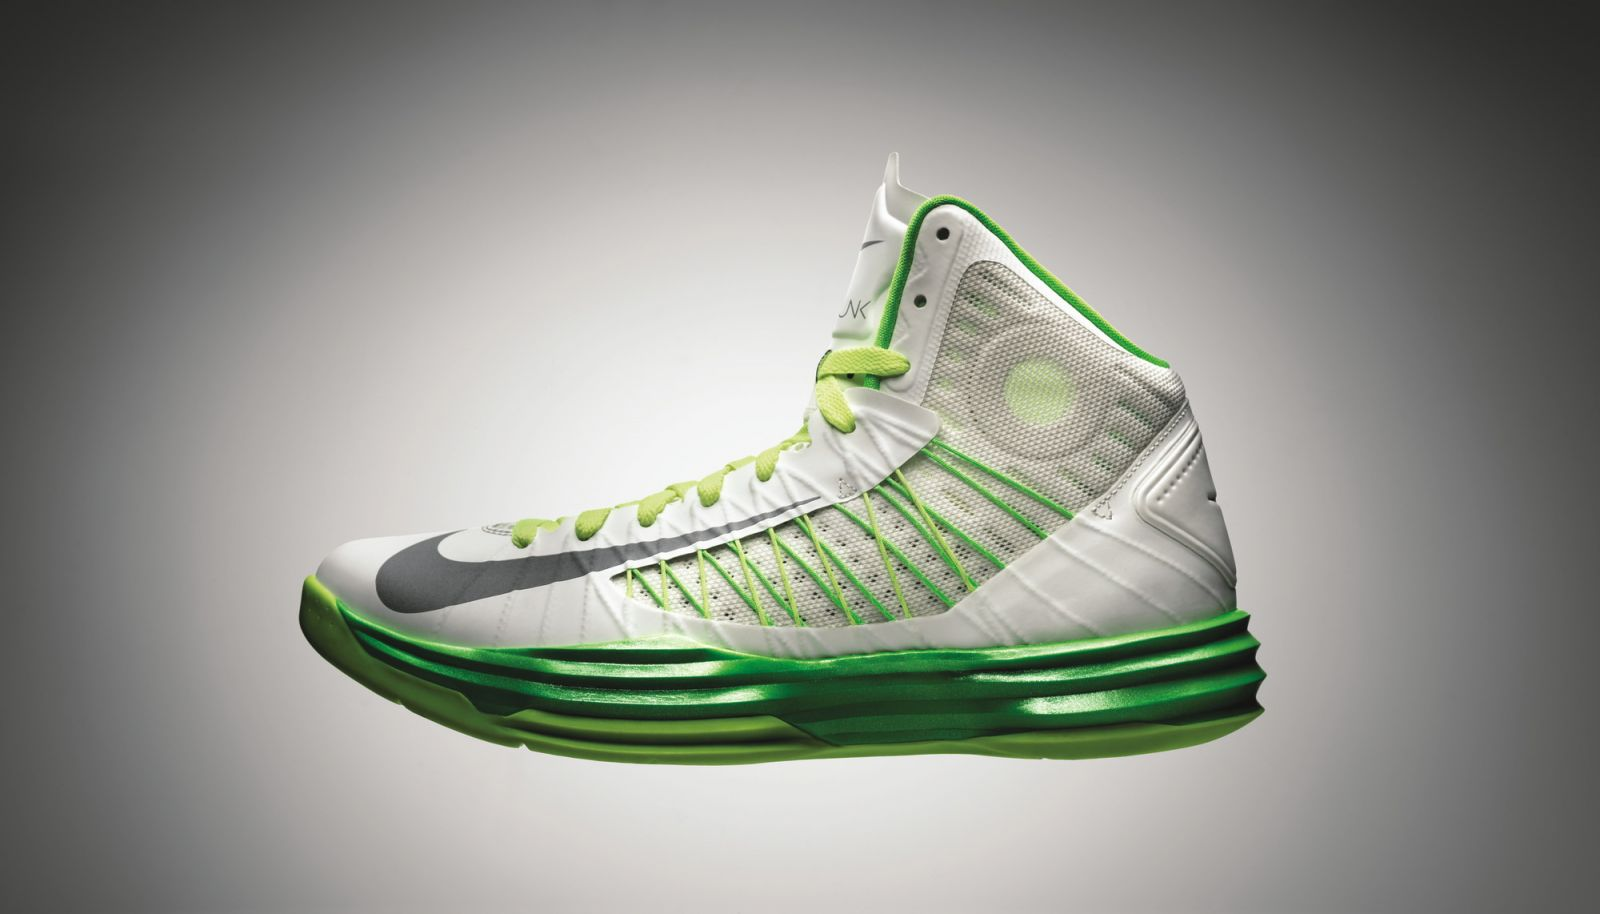 buy popular f1578 4a3a8 Nike Officially Unveils The Lunar Hyperdunk 2012